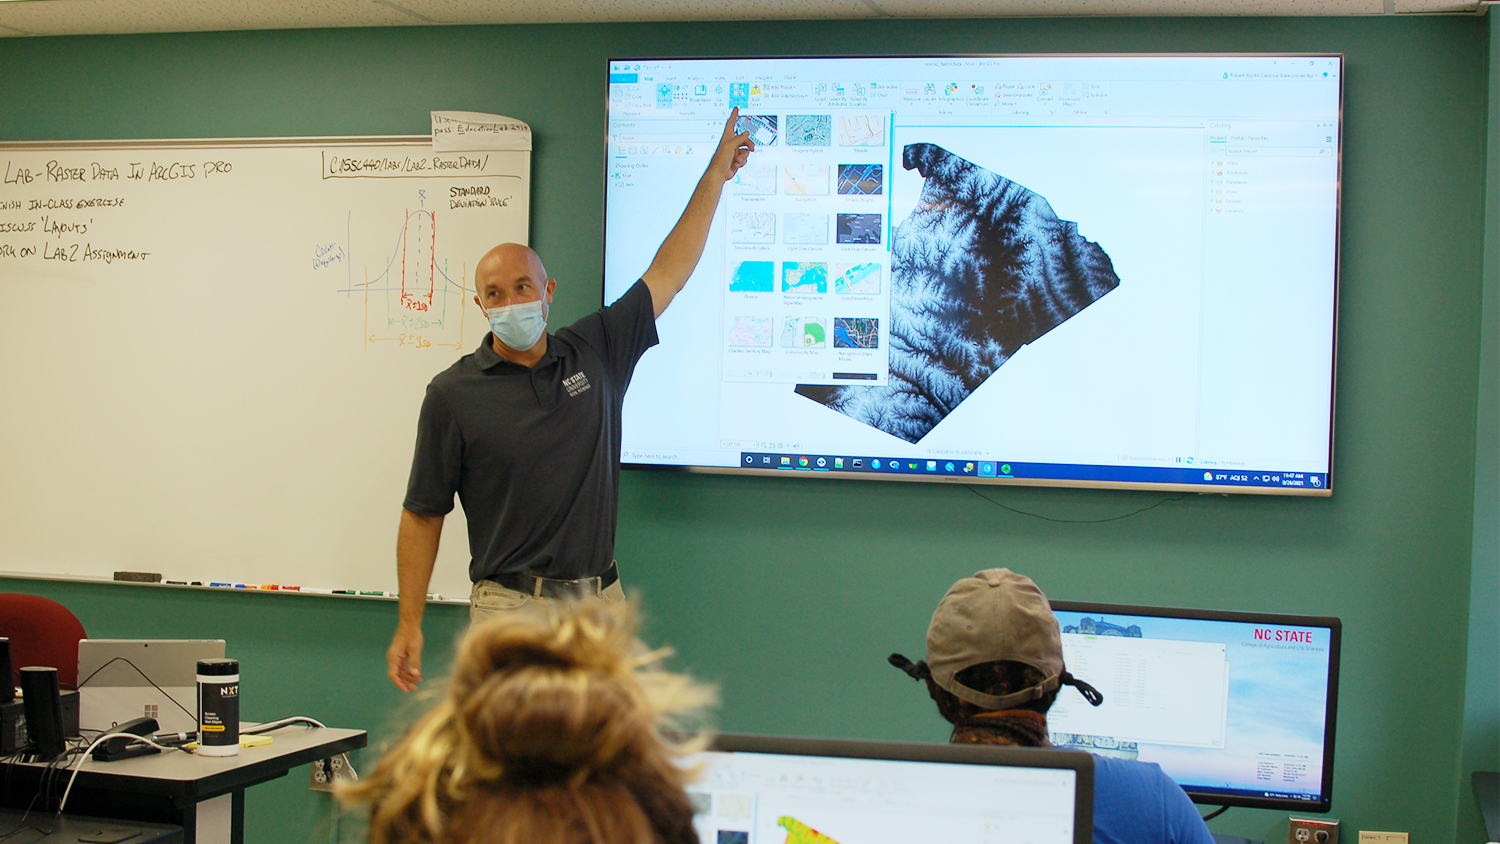 A man teaches graphical mapping at a white board